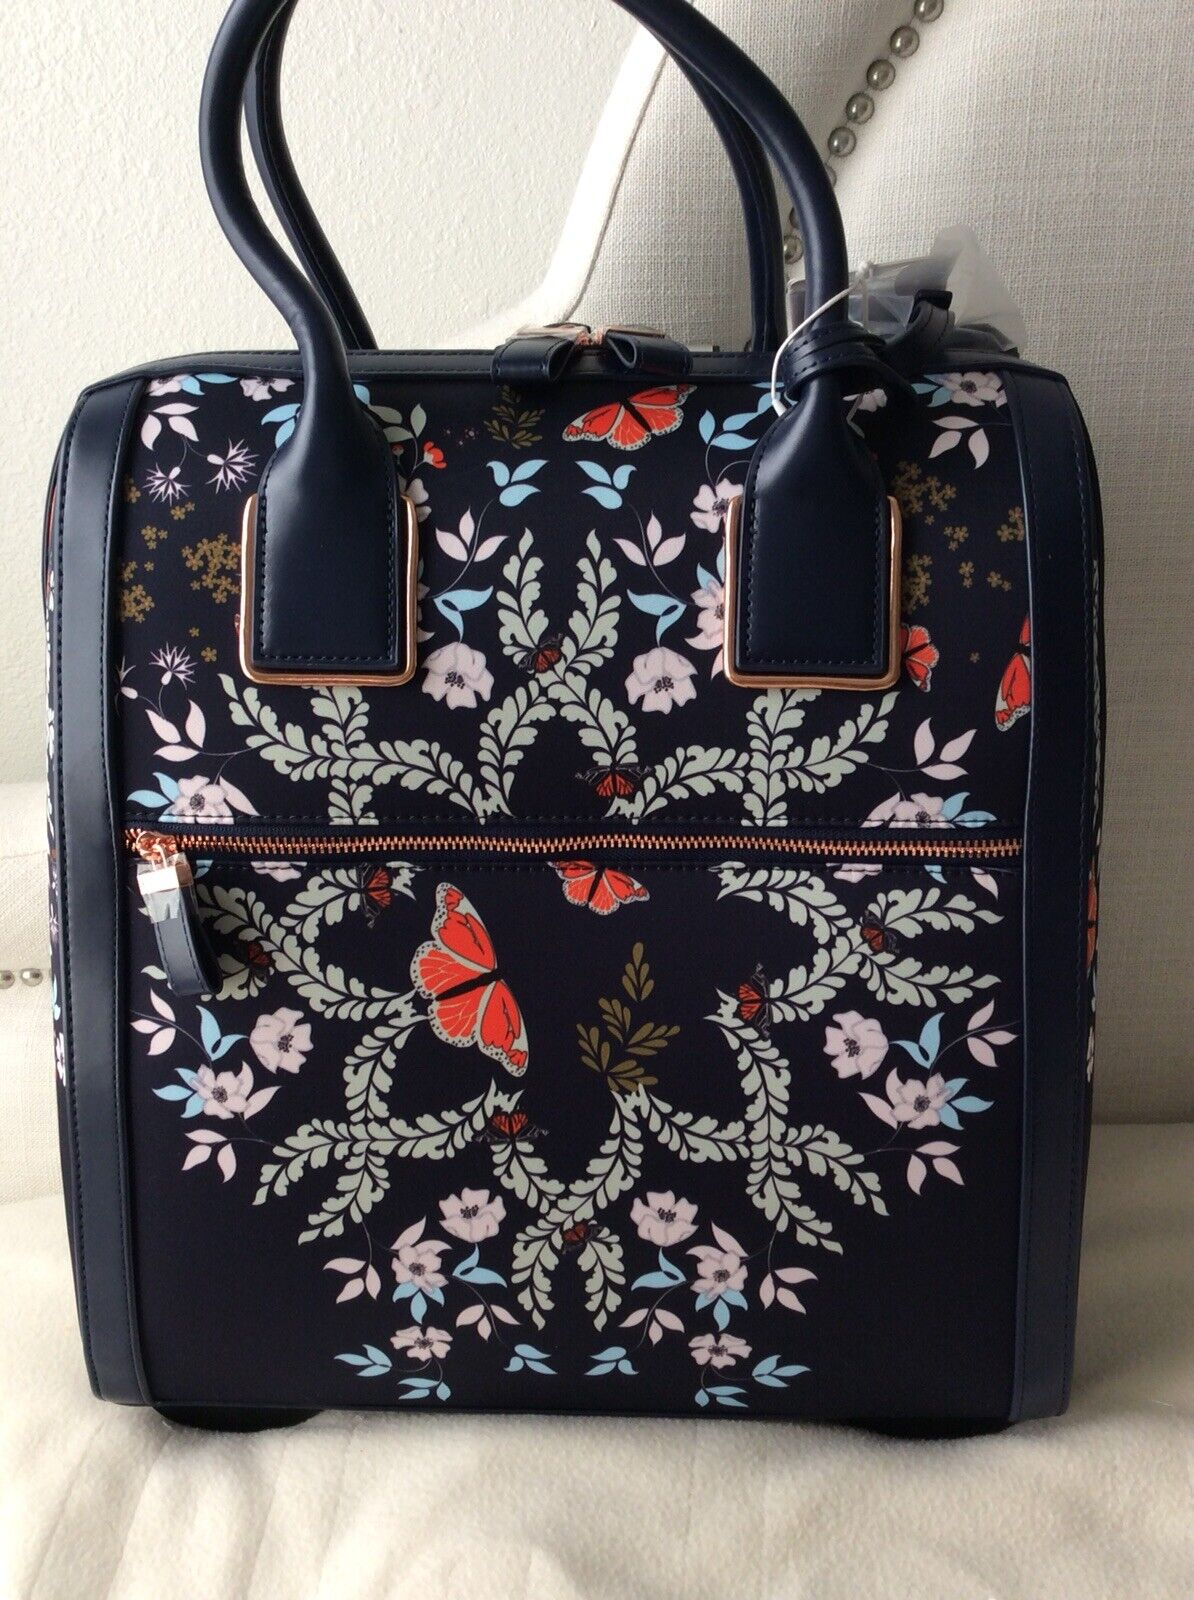 68e0e1e49dde44 Ted Baker Dafni Kyoto Gardens Two Wheel Travel Carry on Suitcase Bag for  sale online